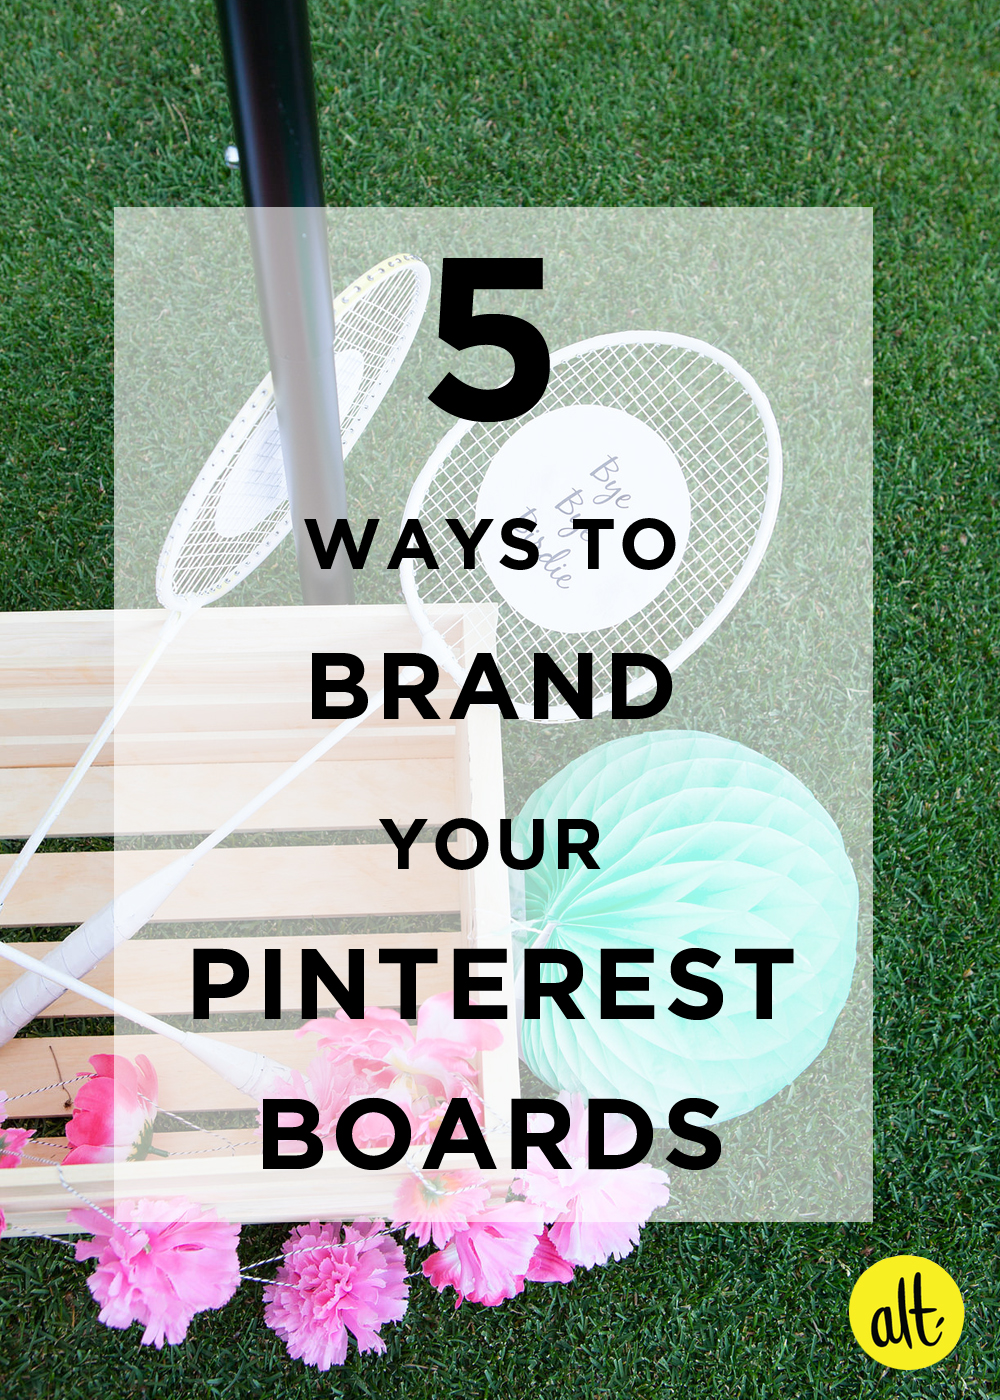 have you evaluated your Pinterest boards lately? check out these 5 ways to brand your Pinterest boards.